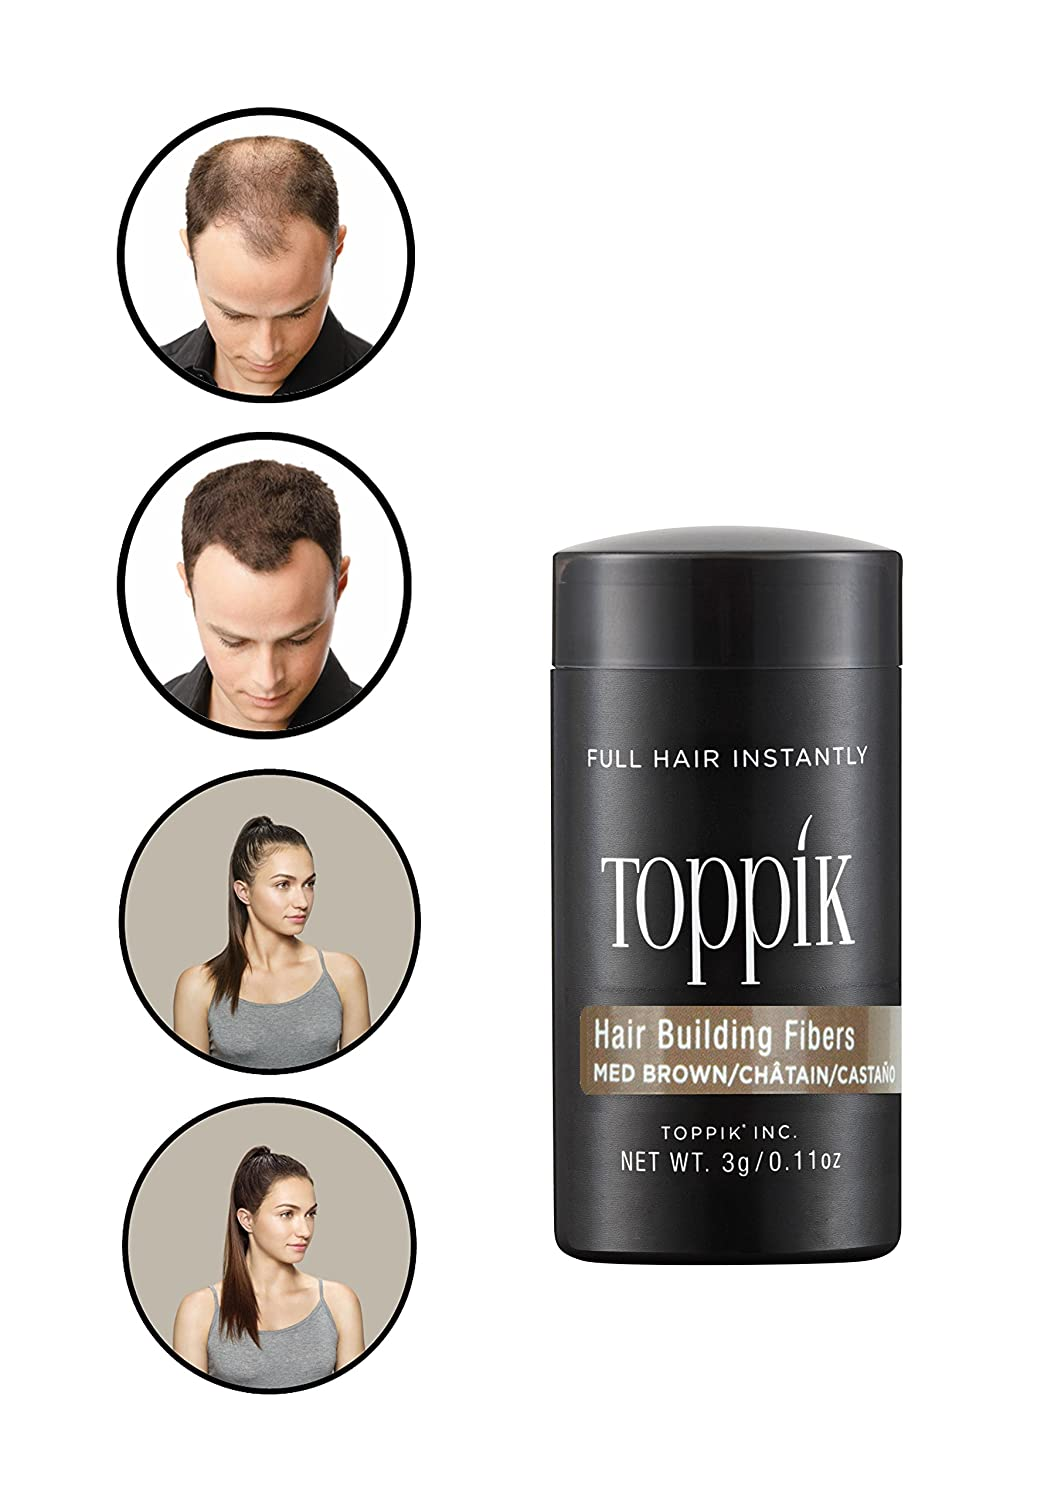 Toppik Hair Building Fibres for Instantly Fuller Hair, Medium Brown, Travel Size, 3-g TOWIR TTM12A